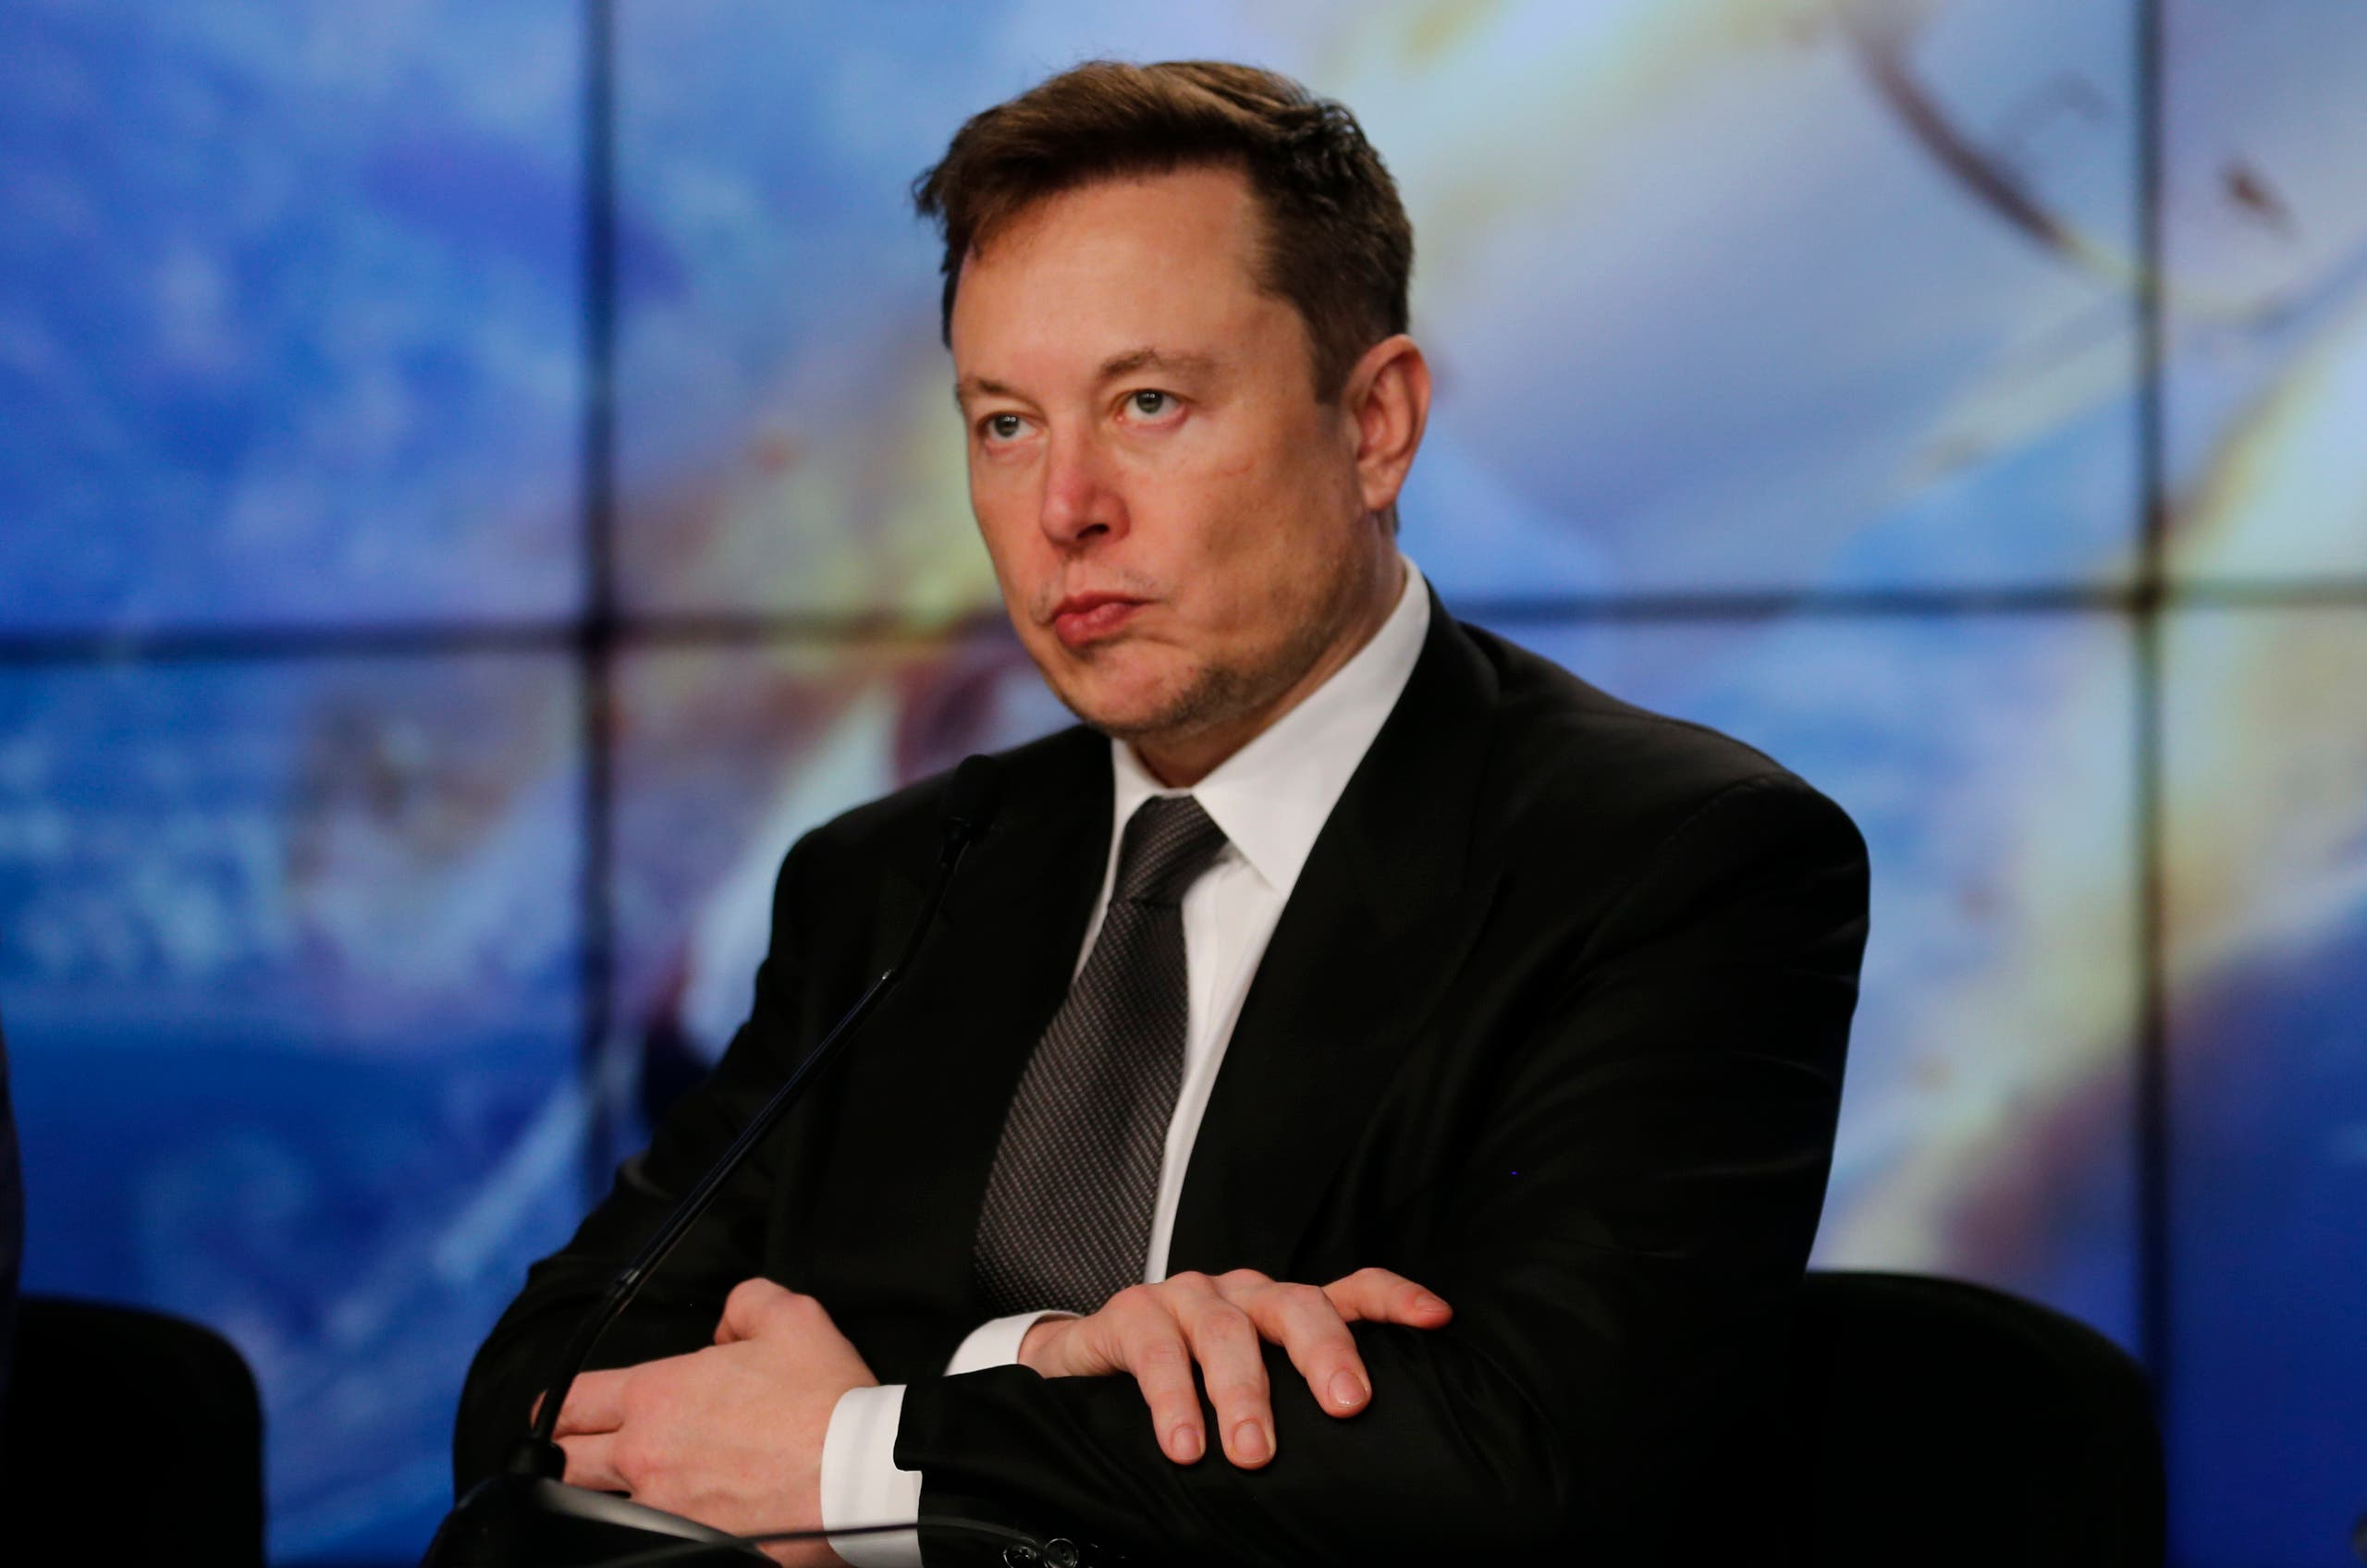 SpaceX founder and chief engineer Elon Musk reacts at a post-launch news conference to discuss the SpaceX Crew Dragon astronaut capsule in-flight abort test at the Kennedy Space Center in Cape Canaveral, Florida, U.S. January 19, 2020. (Reuters)